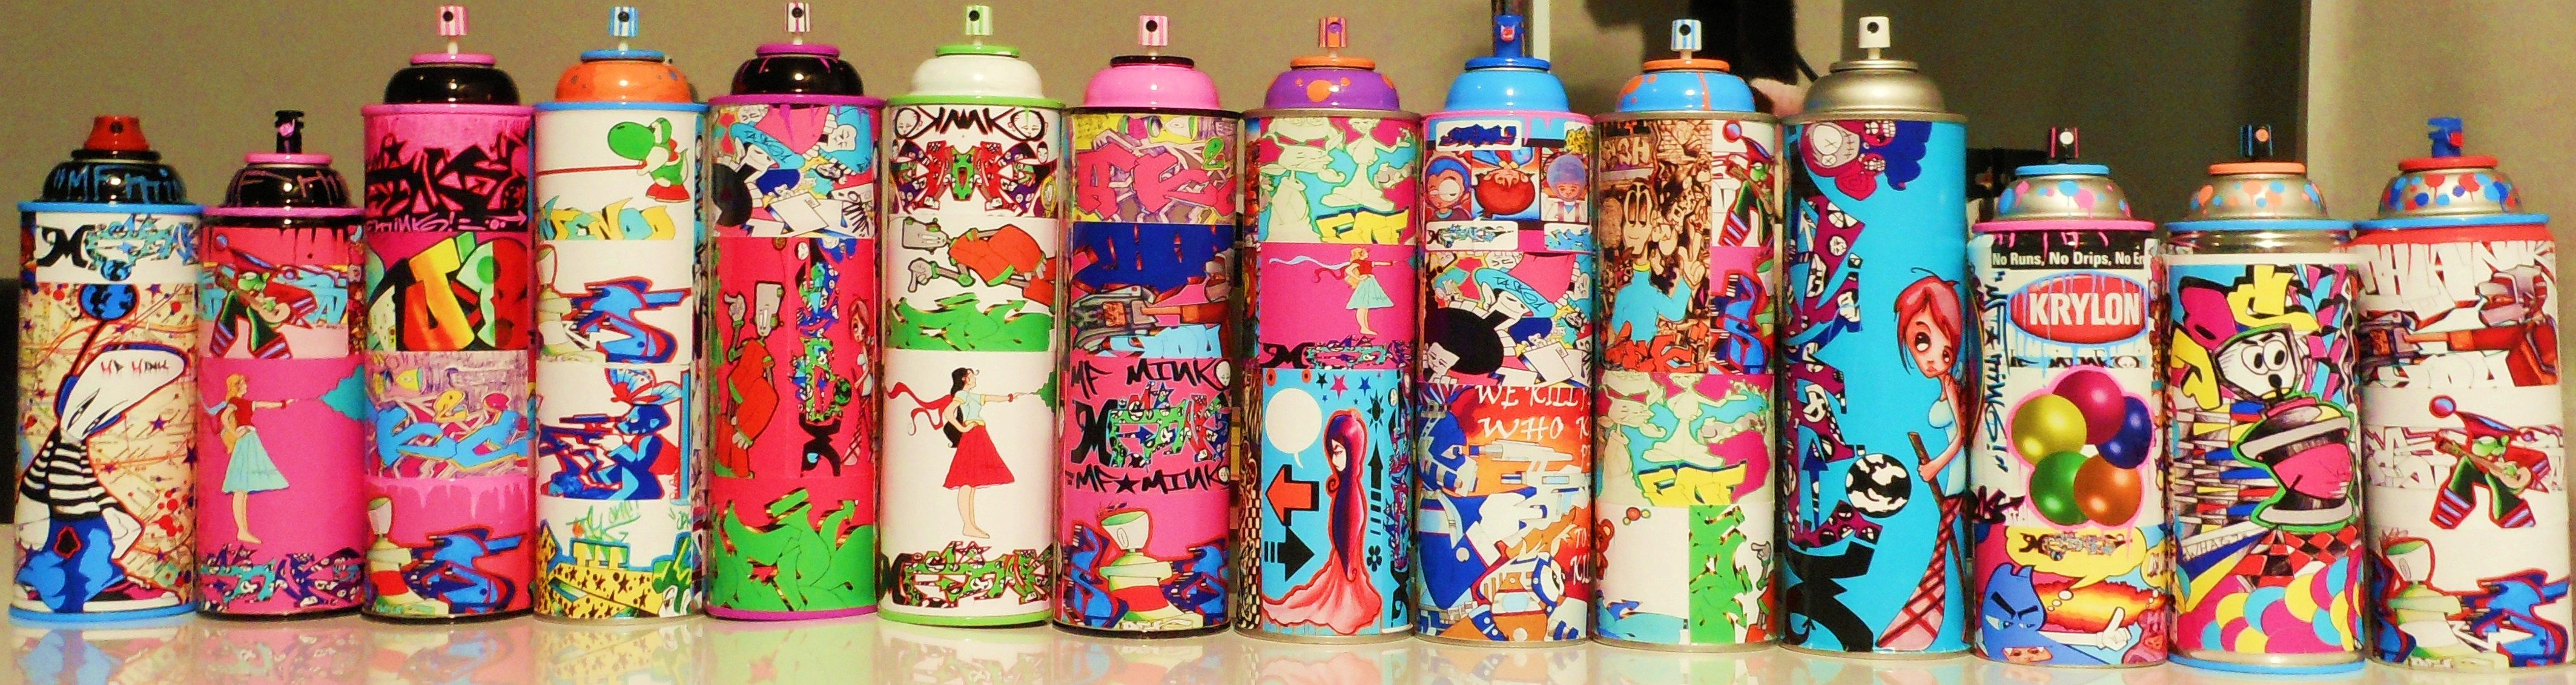 Spray Can Graffiti Art Collection  Great use of old empty spray